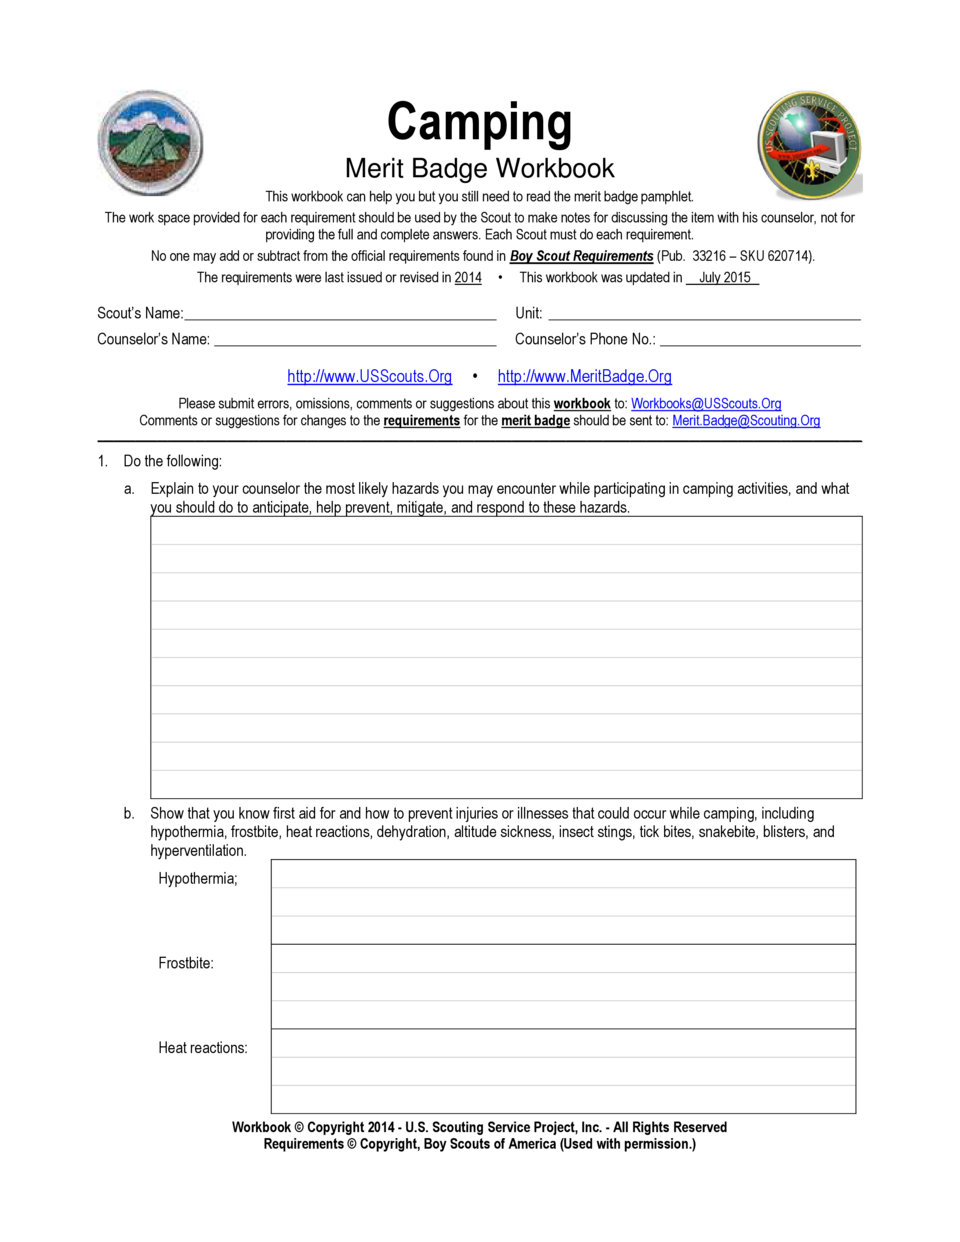 Boy Scouts Merit Badge Worksheets. Worksheets. Kristawiltbank Free printable Worksheets and